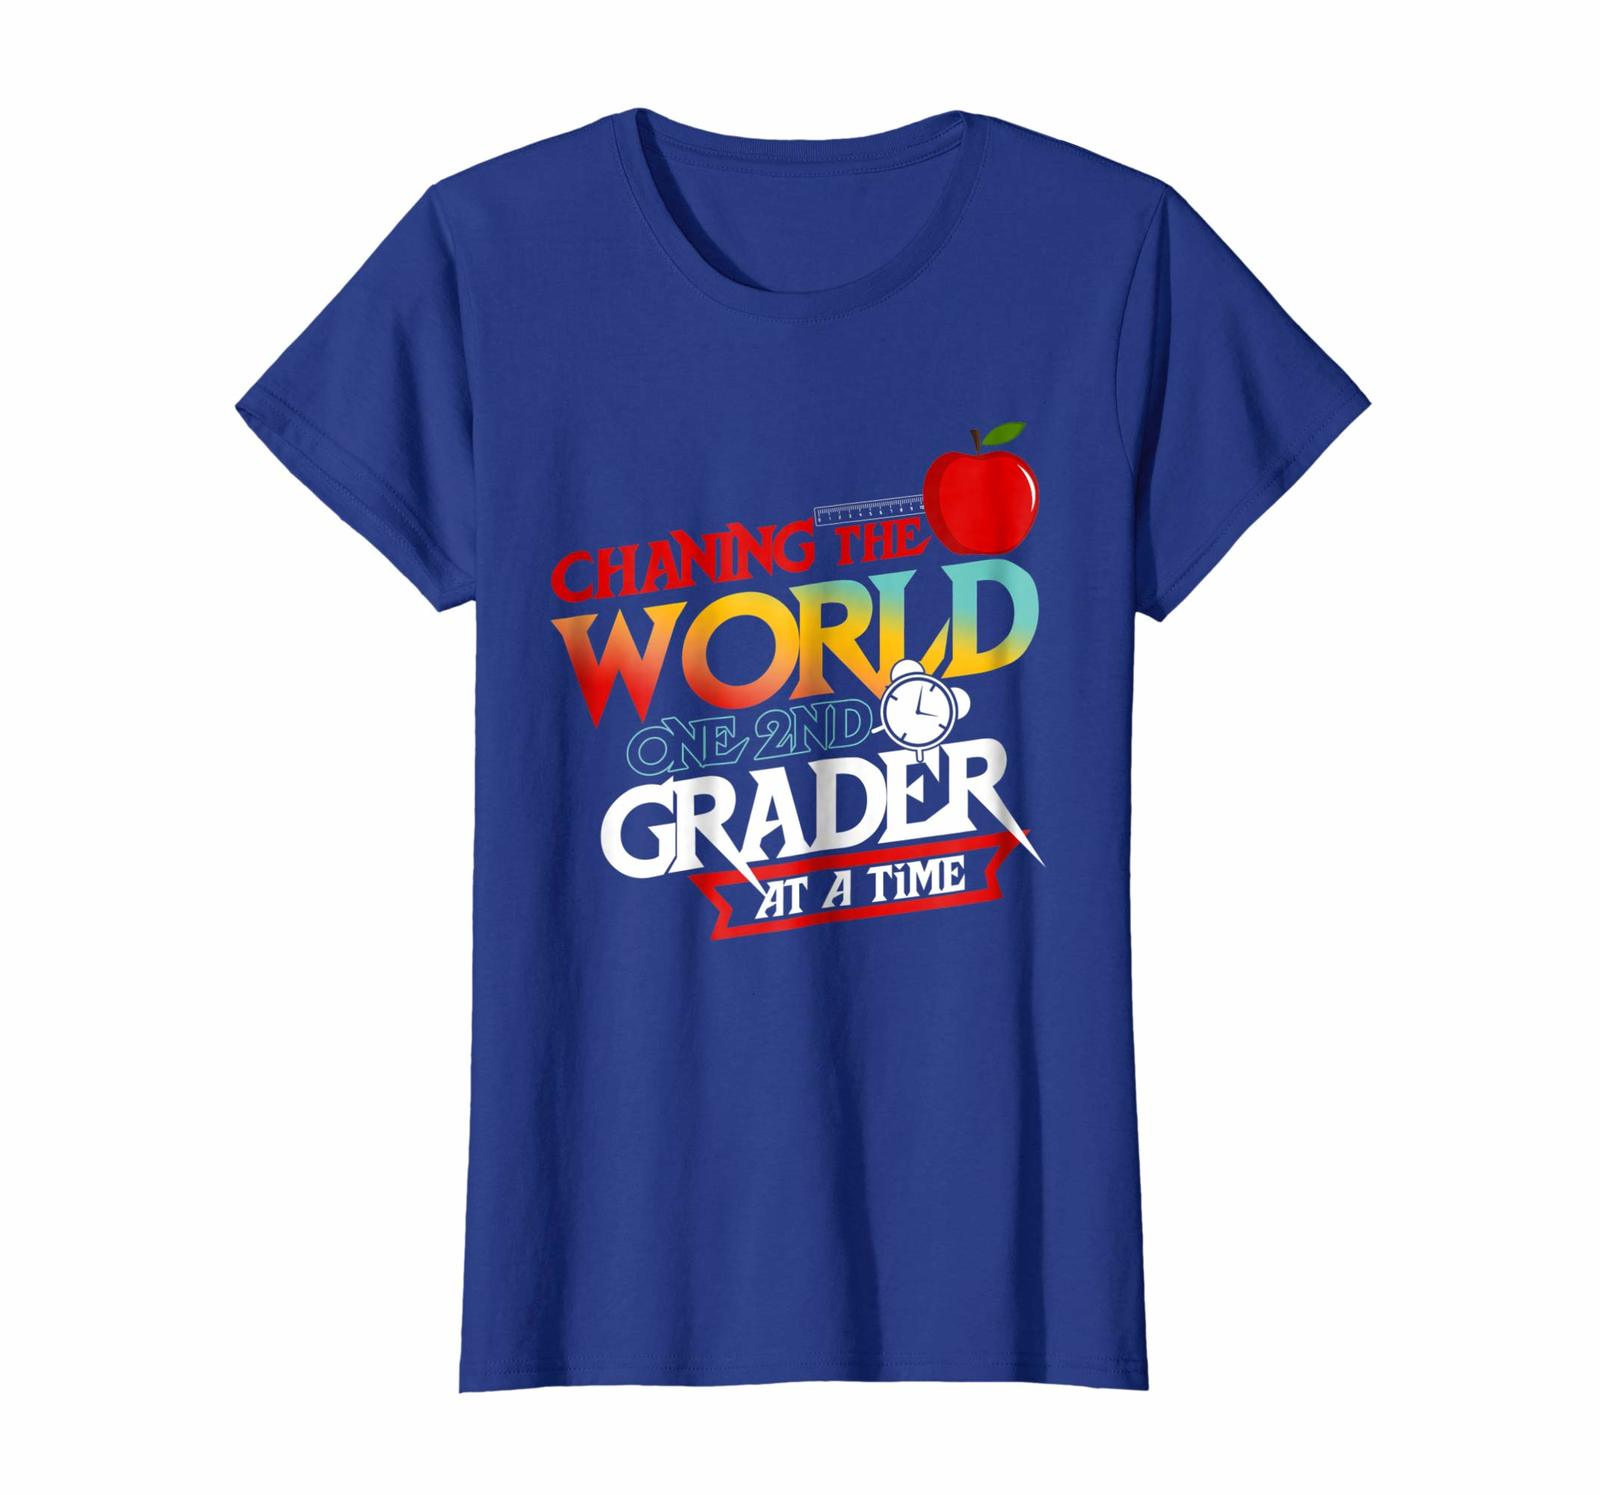 New Style - Changing The World One 2nd Grader At a Time T-Shirt Wowen